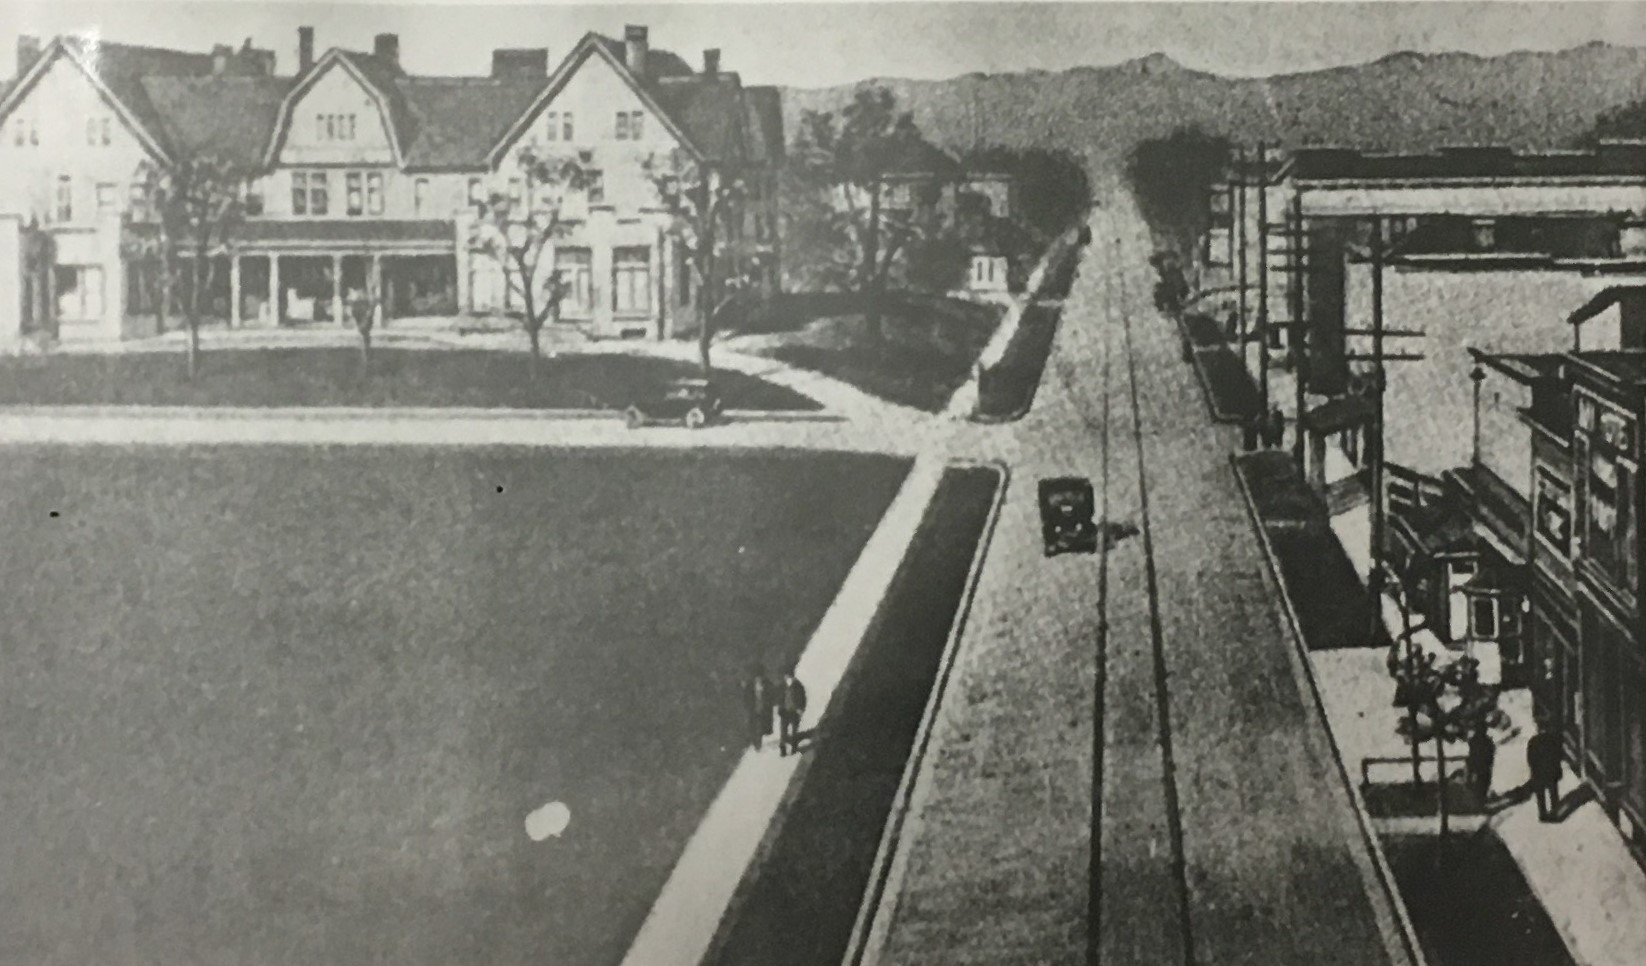 Depiction of the Glenwood as seen from Chestnut Street. Image courtesy of the Kenova Historical Commission.